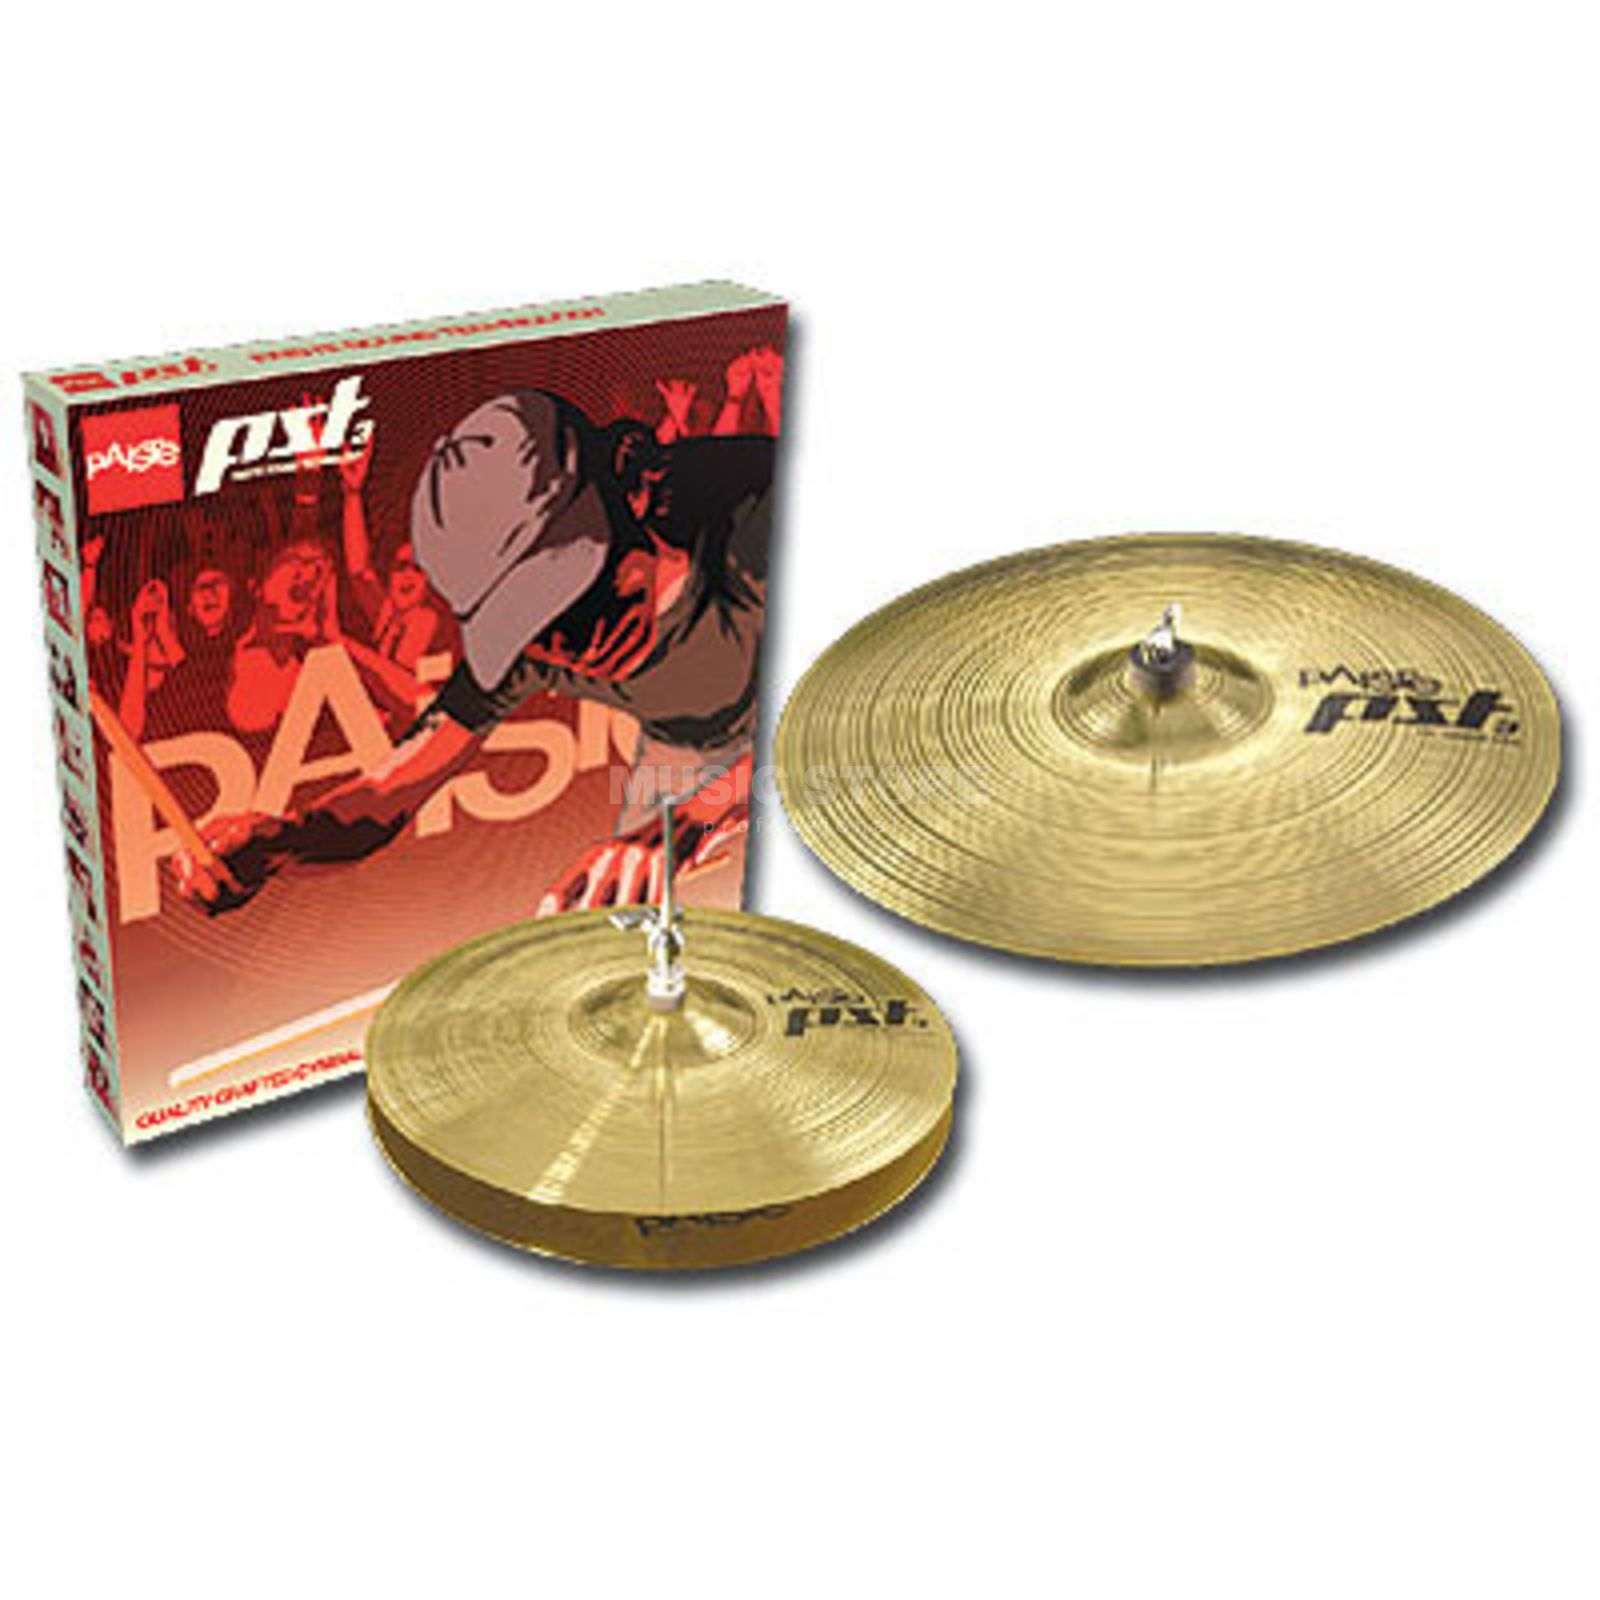 "Paiste PST3 Cymbal Set ""Essential"" 13"" HiHat, 18"" Crash Ride Produktbild"